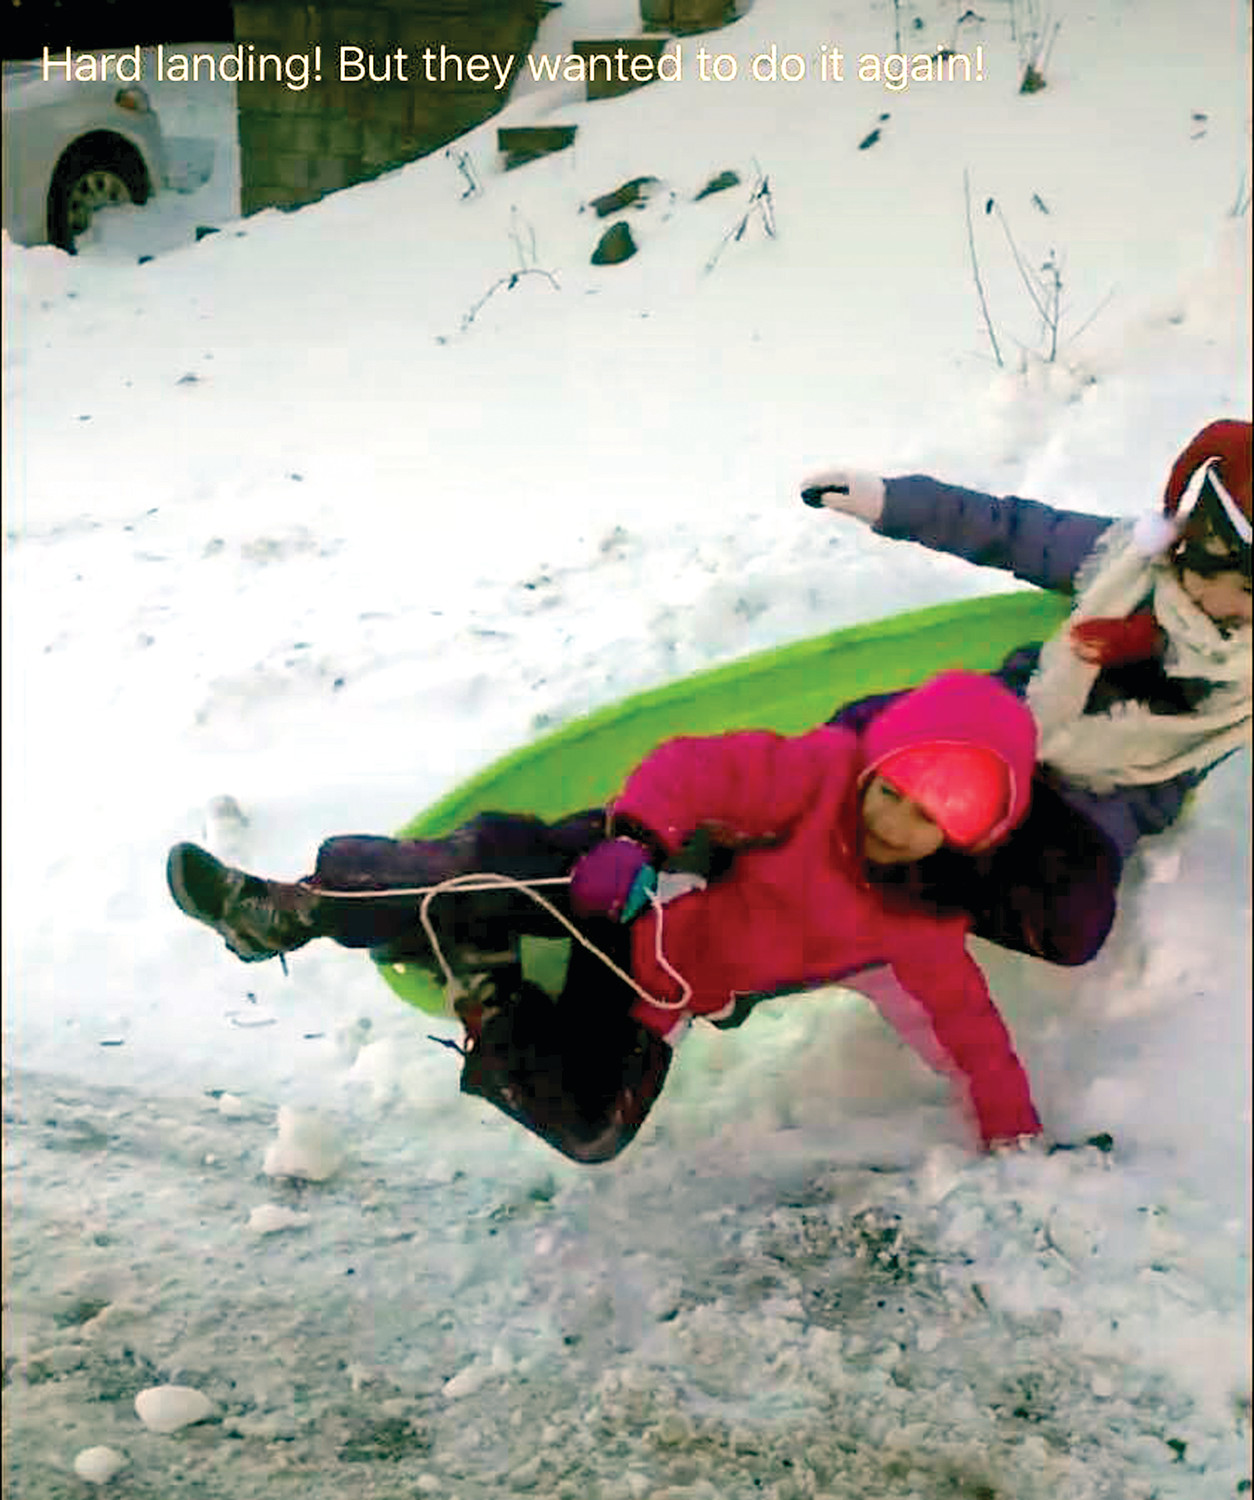 HARD LANDING: Gianna Capraro and Gianna Birri made the most of the snow by hitting the hills with their sled. While they may have wiped out here, it didn't stop them from climbing the hill for another ride. (Submitted photo by Marisa Birri)